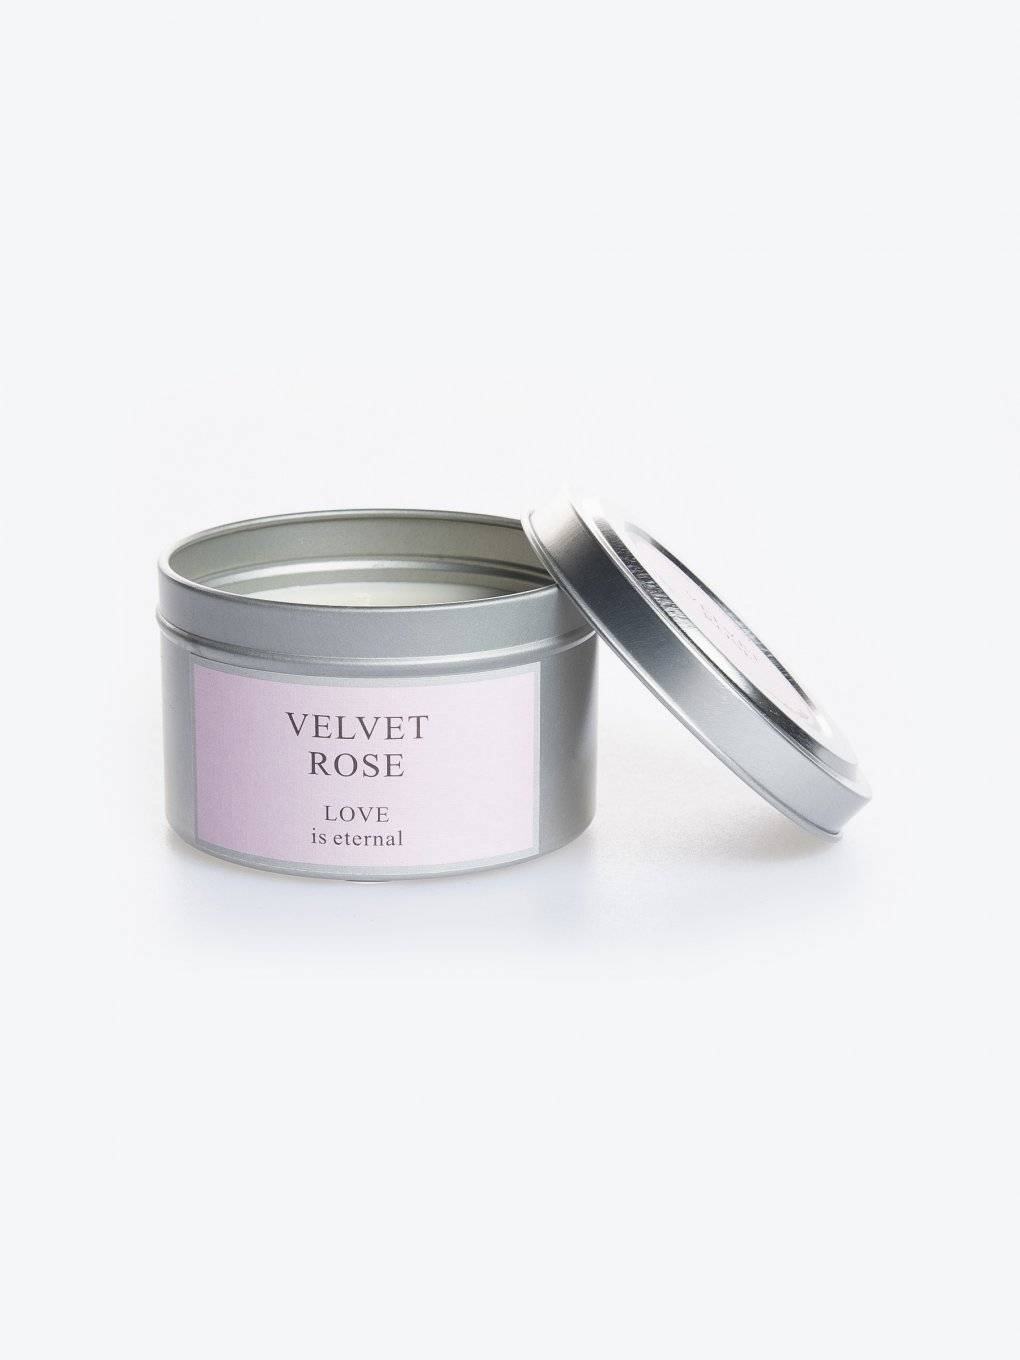 Velvet rose scented tin candle